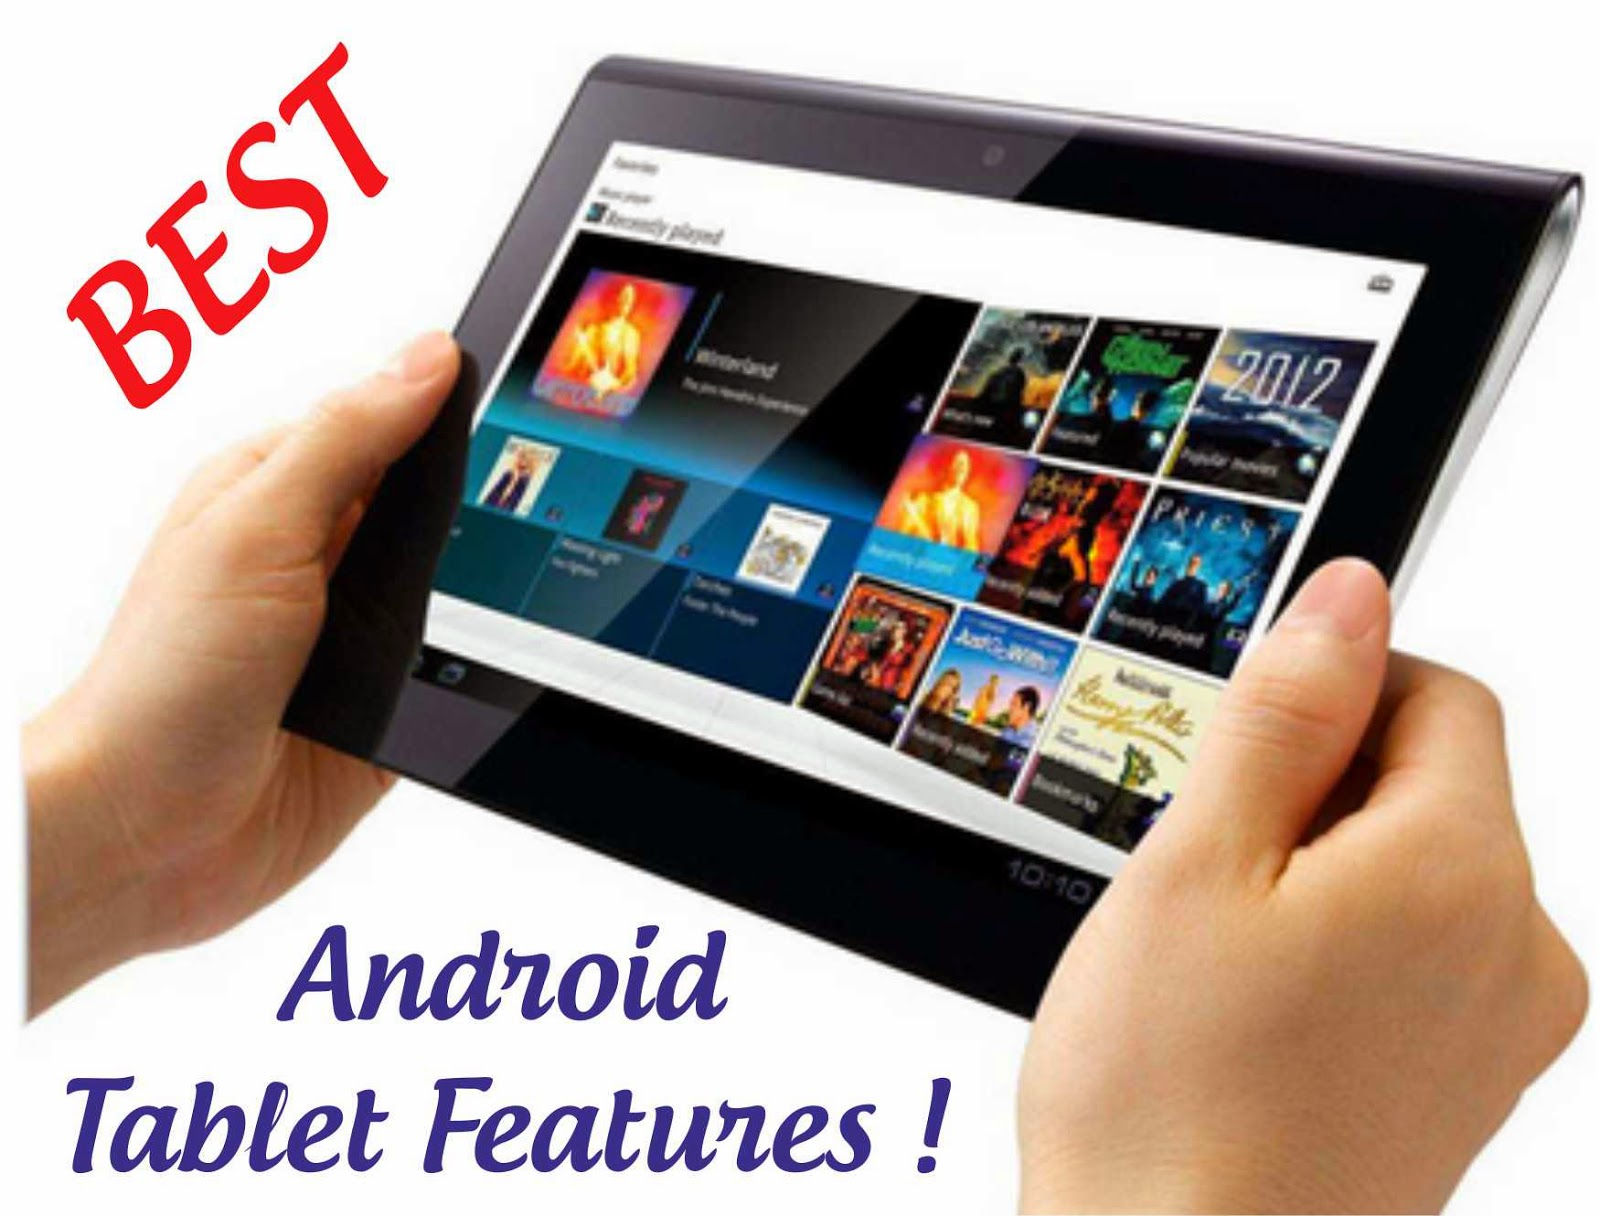 Best Android Tablet Features that You Need to Look For